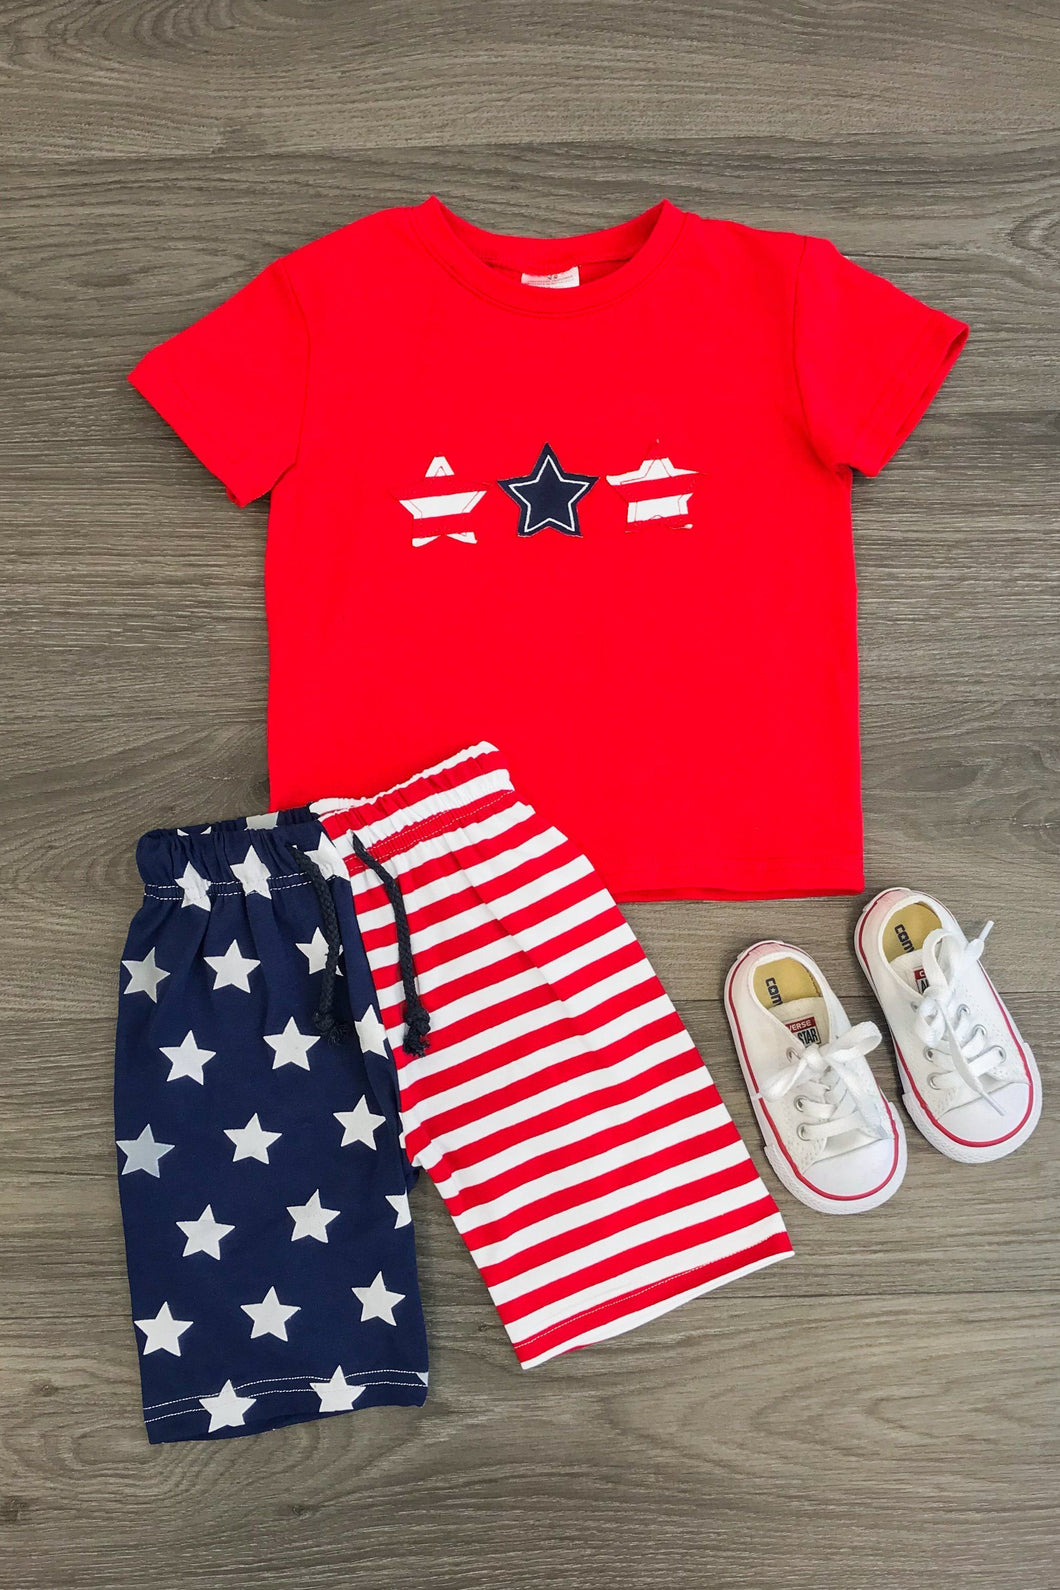 Star Spangled Banner Short Set